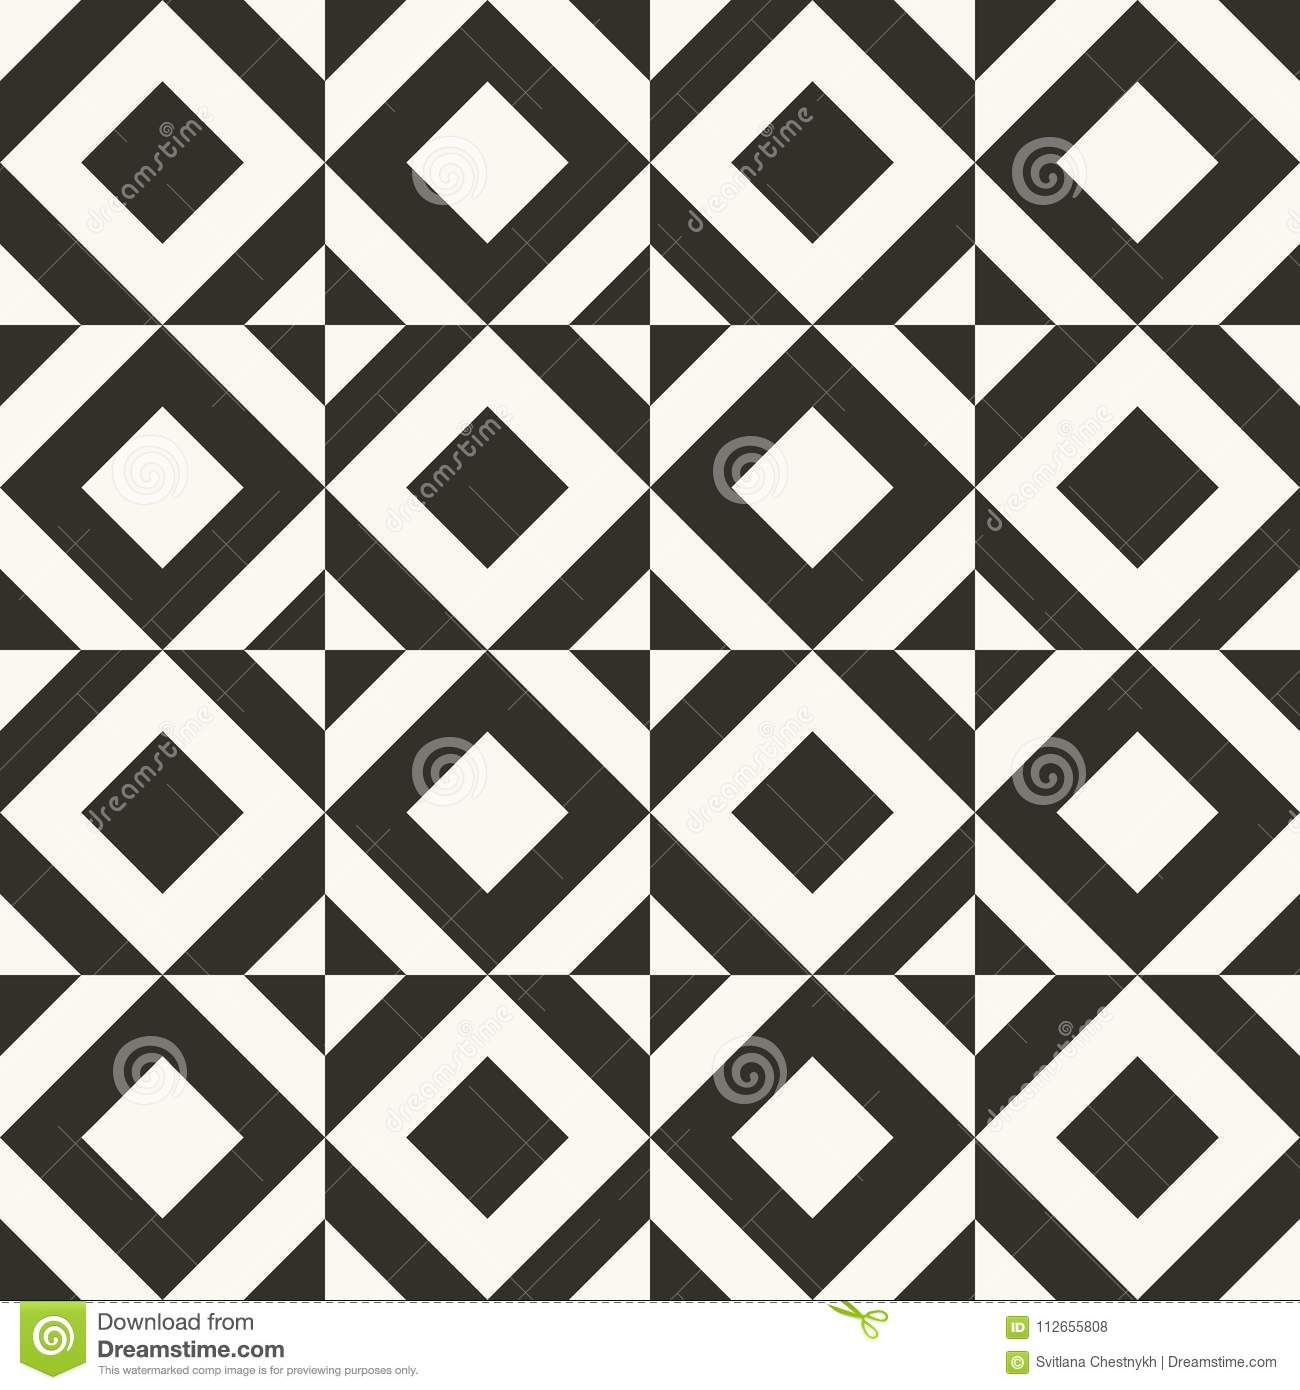 Black and white abstract geometric quilt pattern. Simple minimal graphic backgorund.